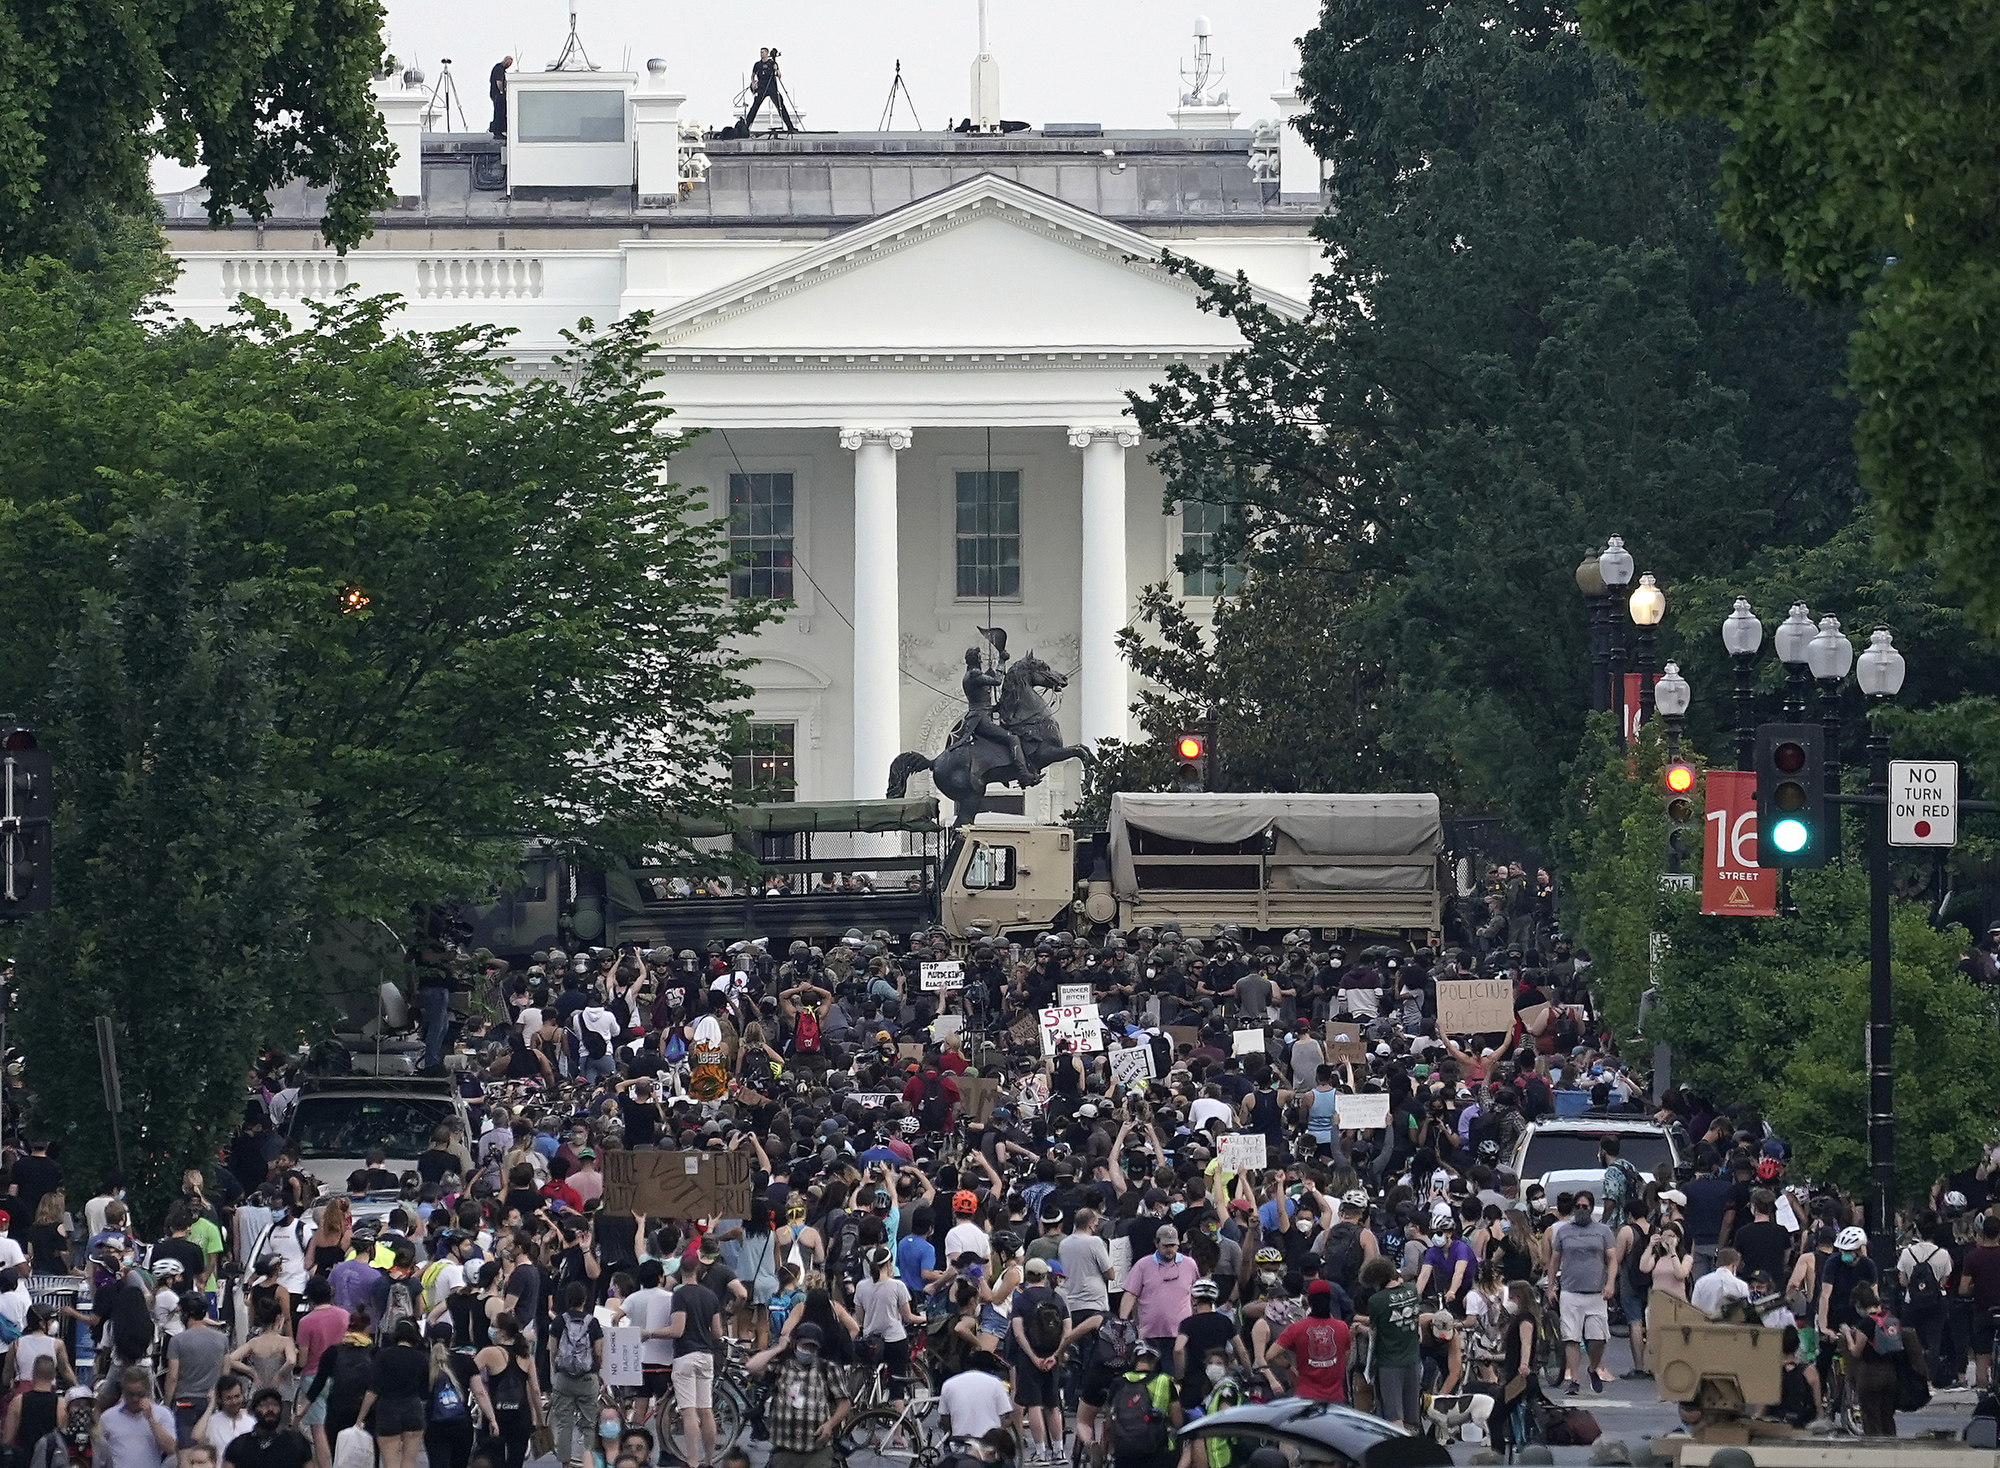 Demonstrators participate in a peaceful protest against police brutality and the death of George Floyd, on June 3, 2020 in Washington, D.C.